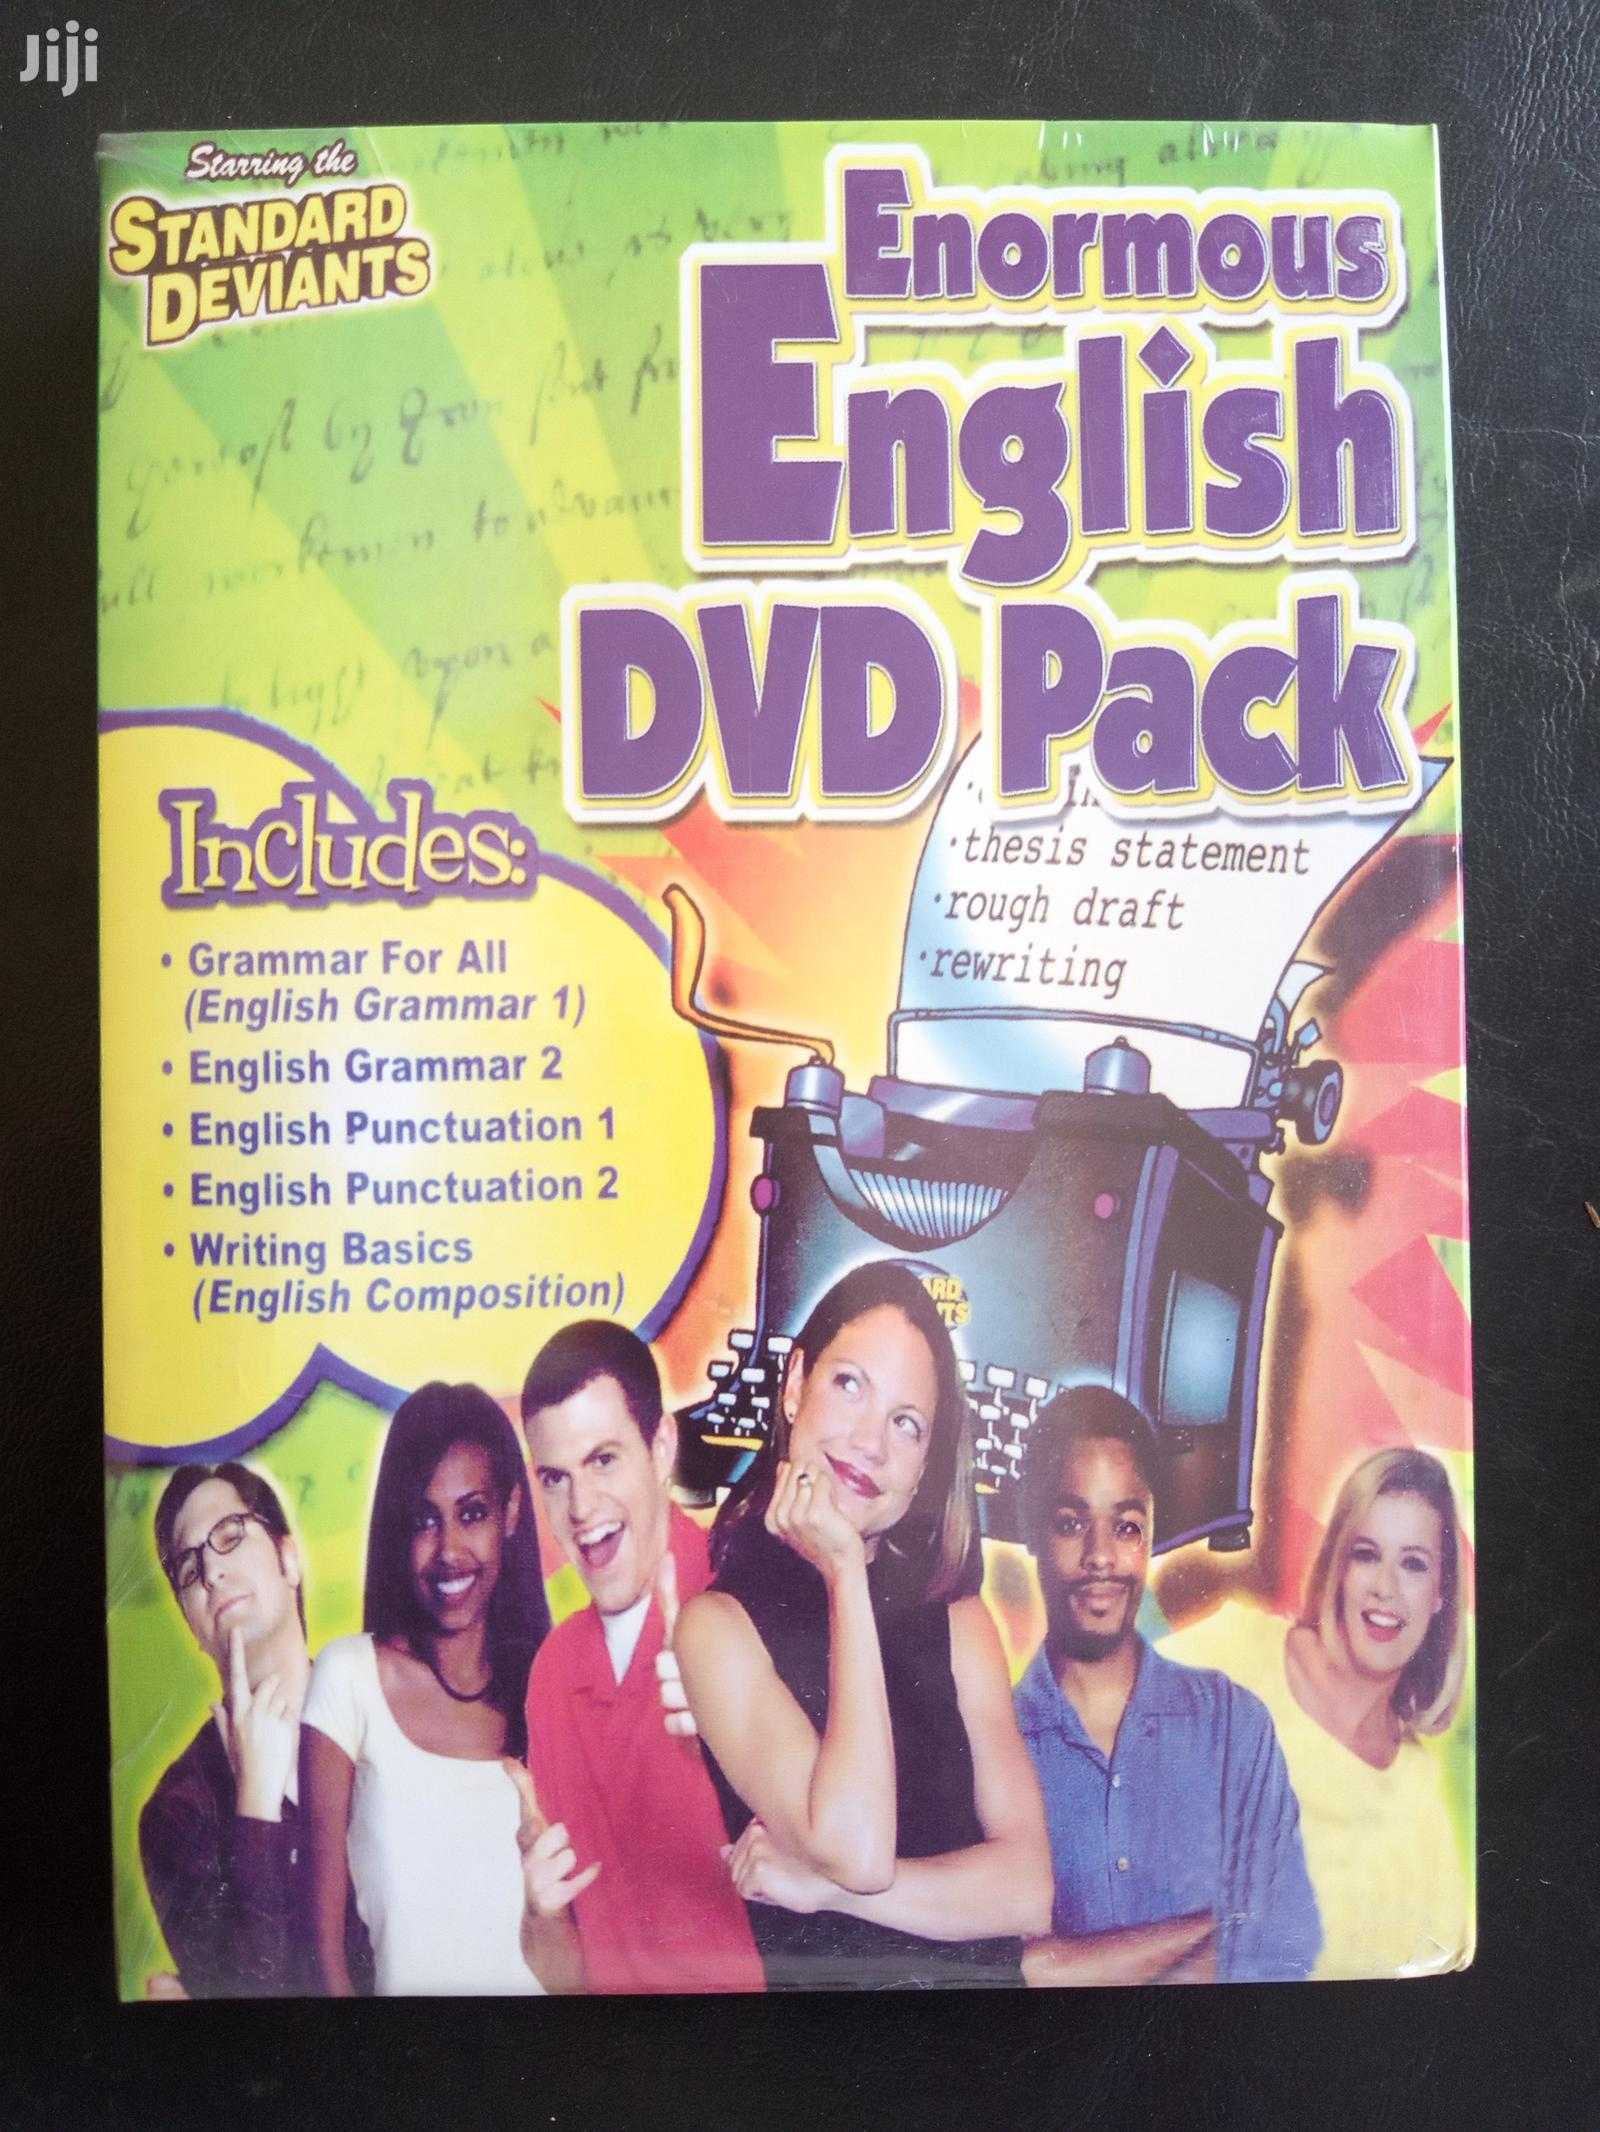 Standard Enormous English DVD Pack (FREE SHIPPING)